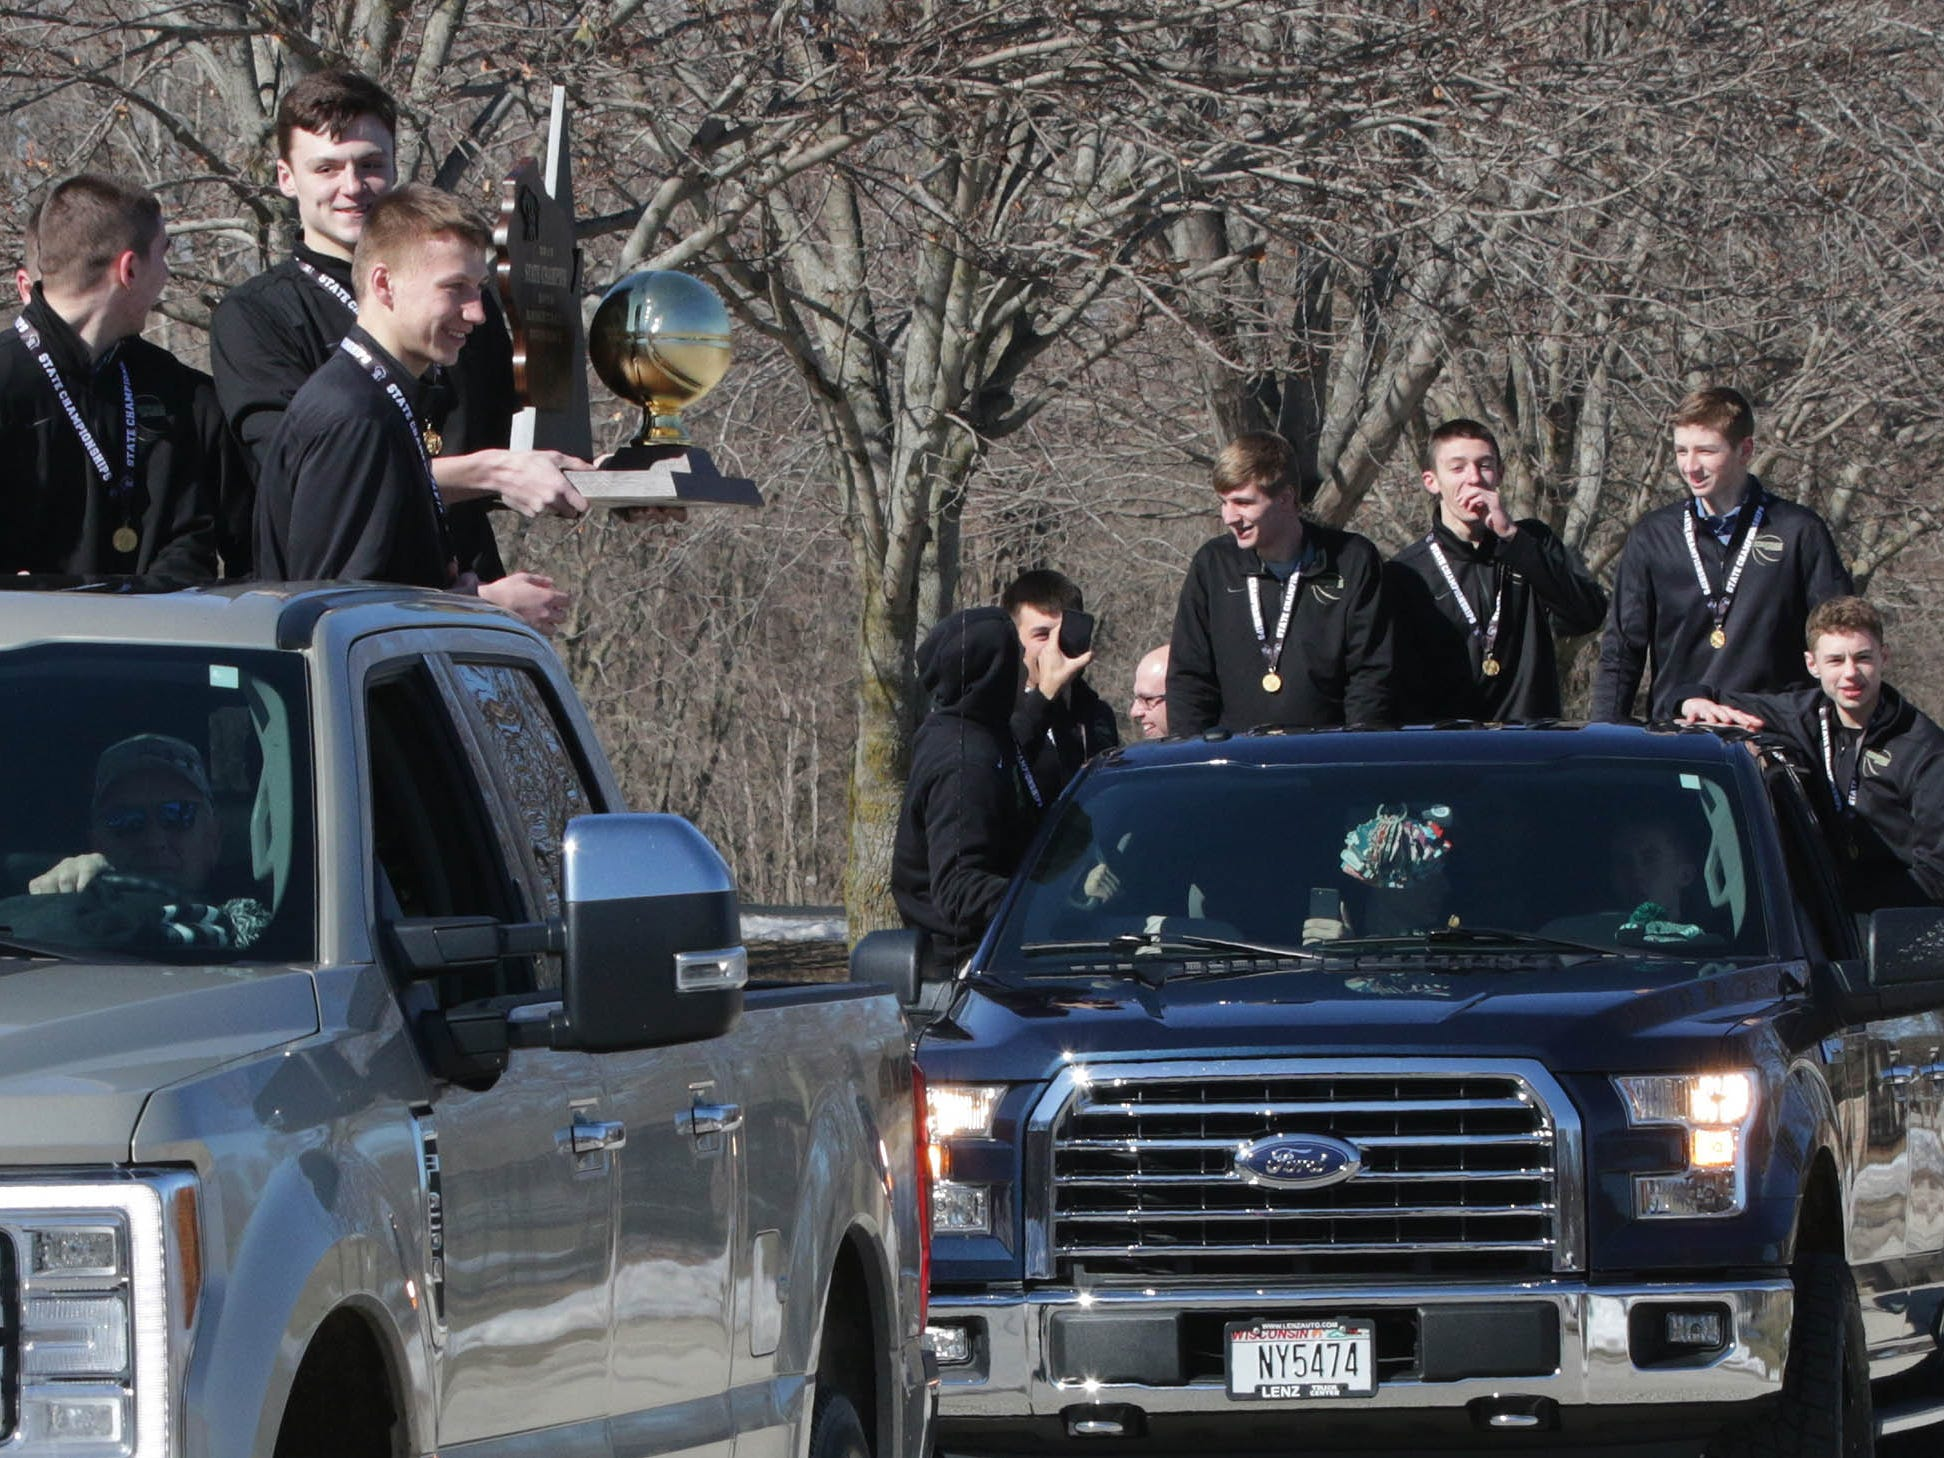 Sheboygan Lutheran basketball players arrive for a rally celebrating their WIAA Div. 5 State Champions win, Sunday, March 17, 2019, in Sheboygan, Wis.